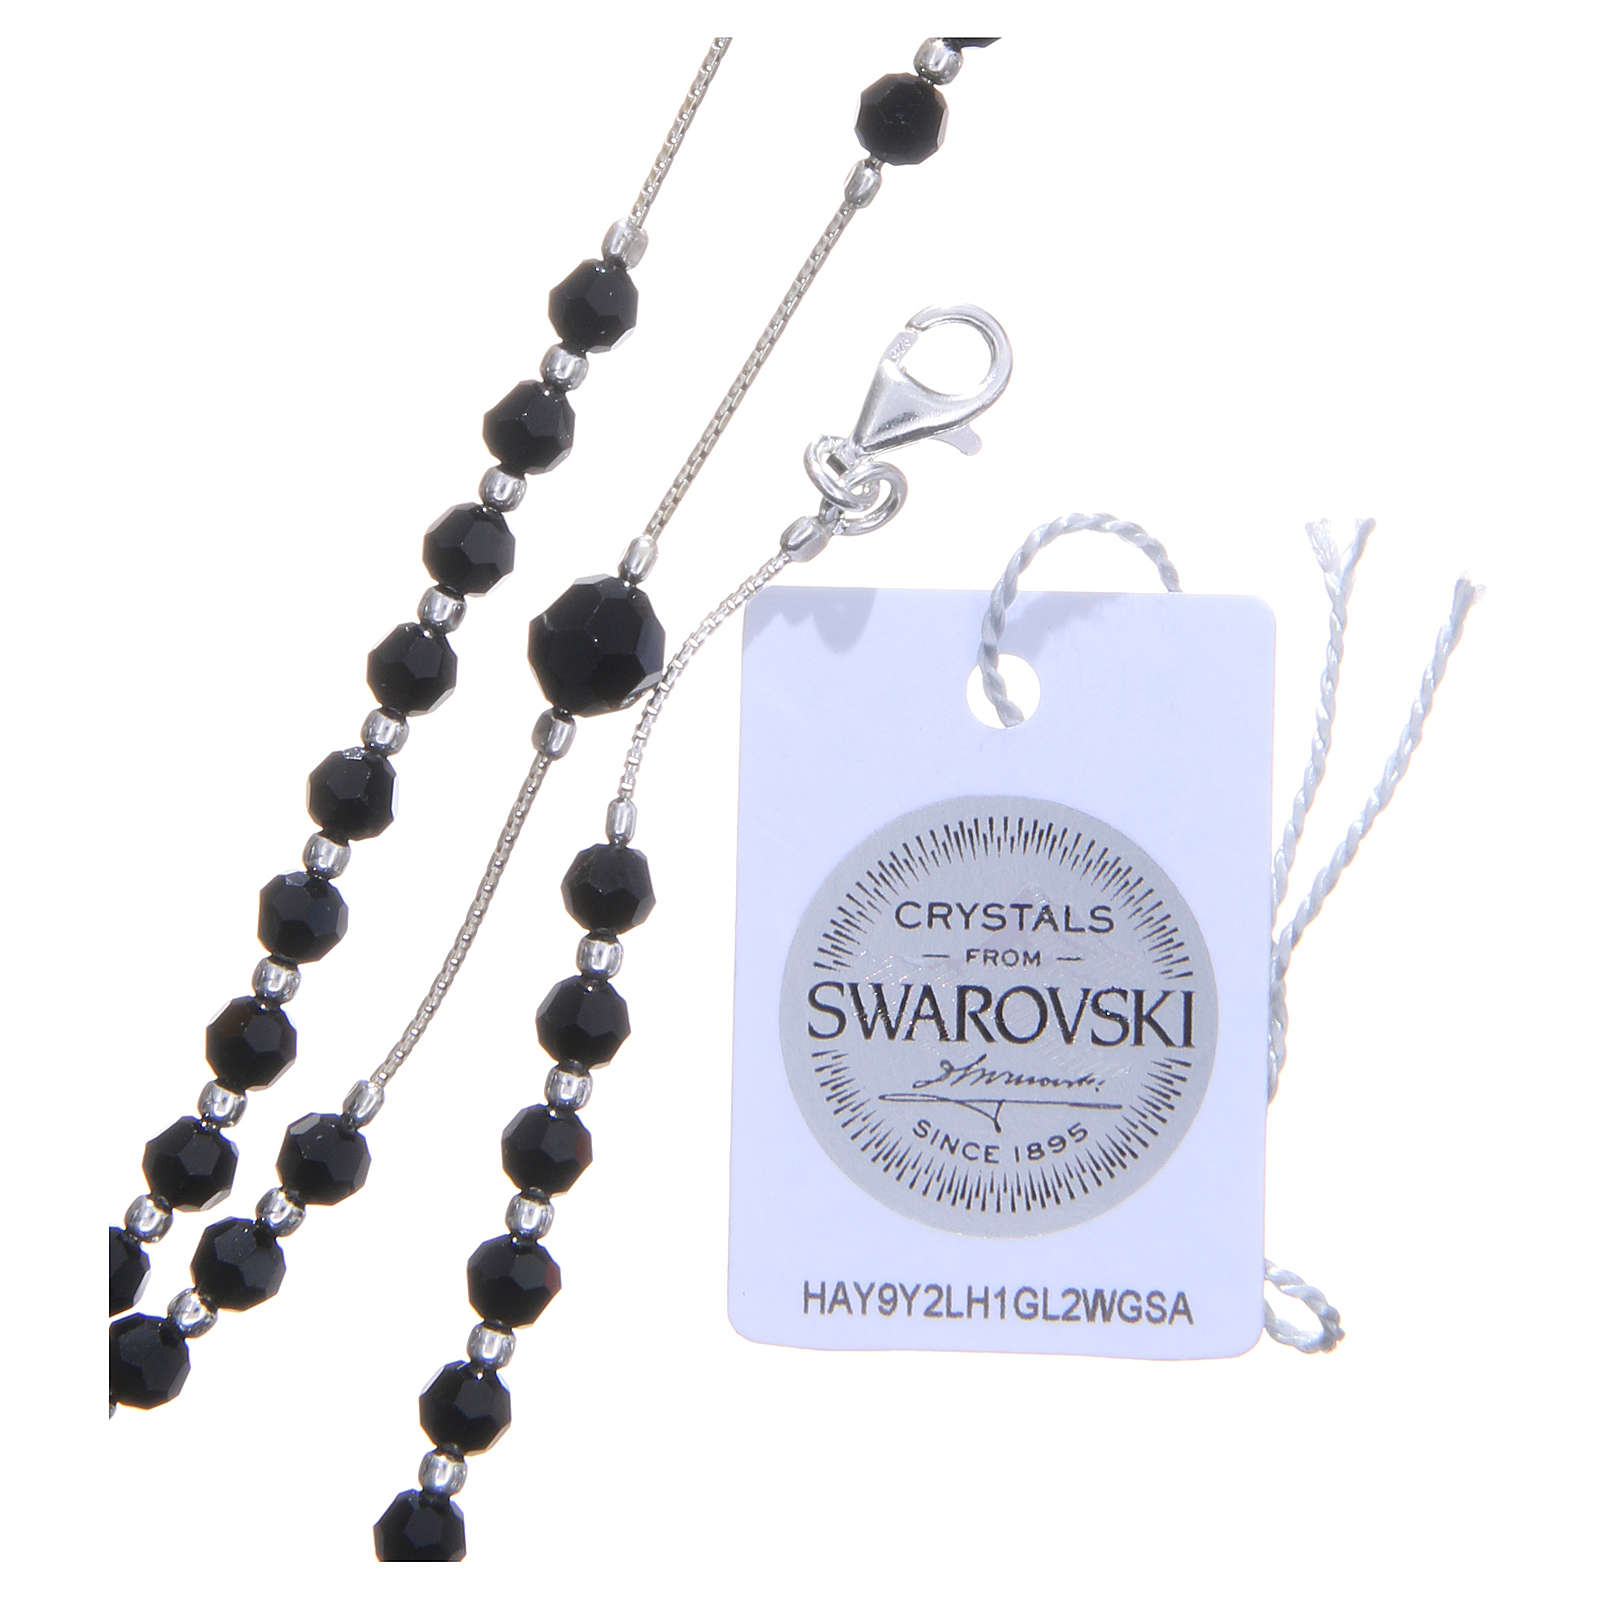 Rosary beads in 925 silver and Swarowski crystal grains measuring 4mm 4